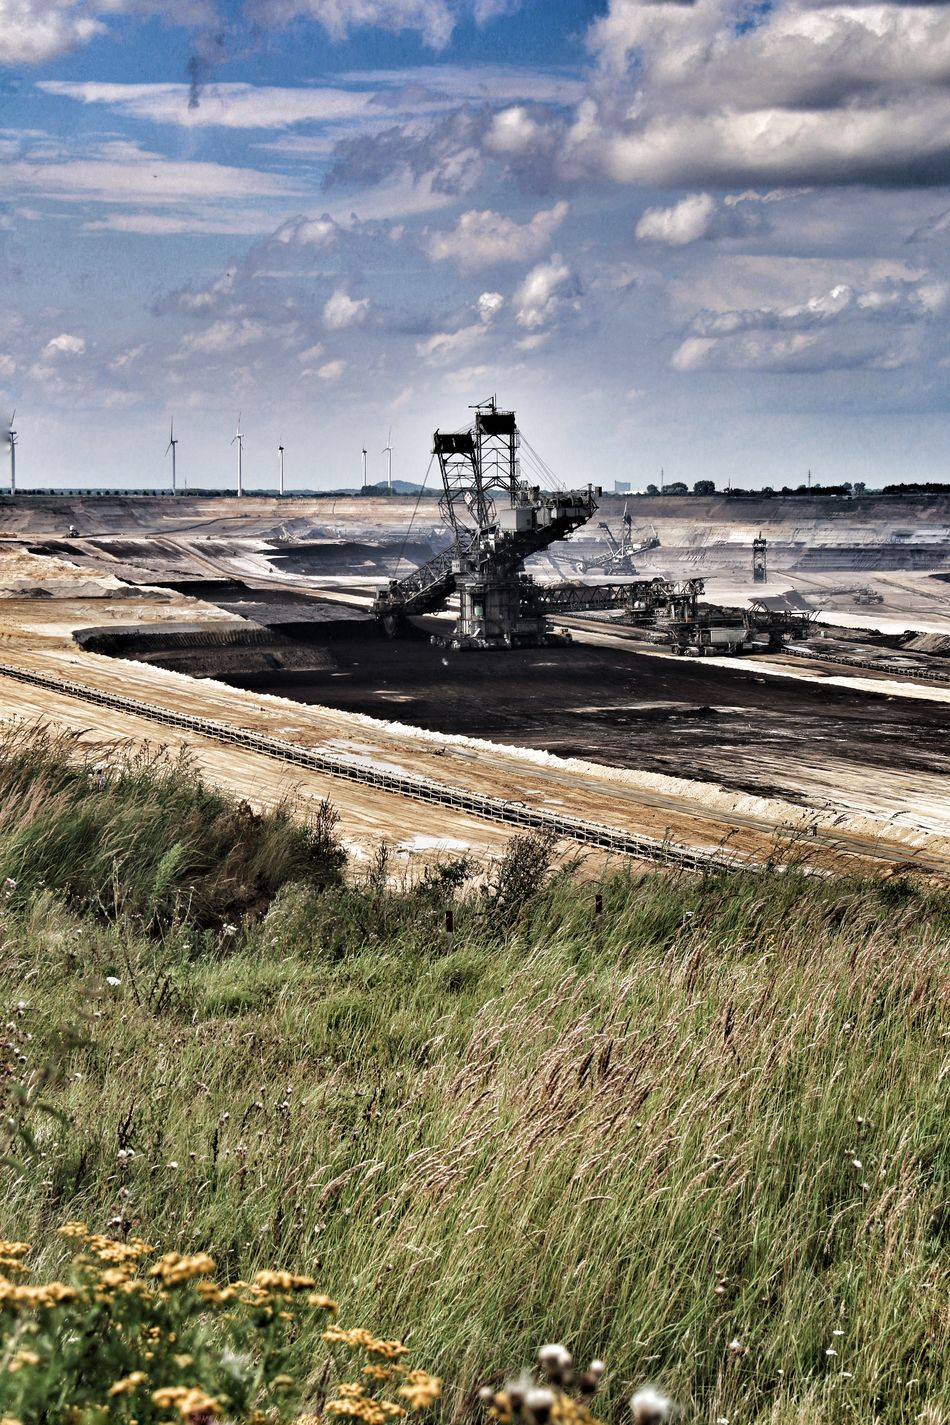 Brown coal surface mining - open cast coal mining. Huge bucket wheel excavator. new developed technology. Supposed to be more environmentally friendly. Bucket Wheel Excavator Cloud - Sky Grass Gravel Industry No People Non-urban Scene Open Cast Coal Mining Outdoors Sky